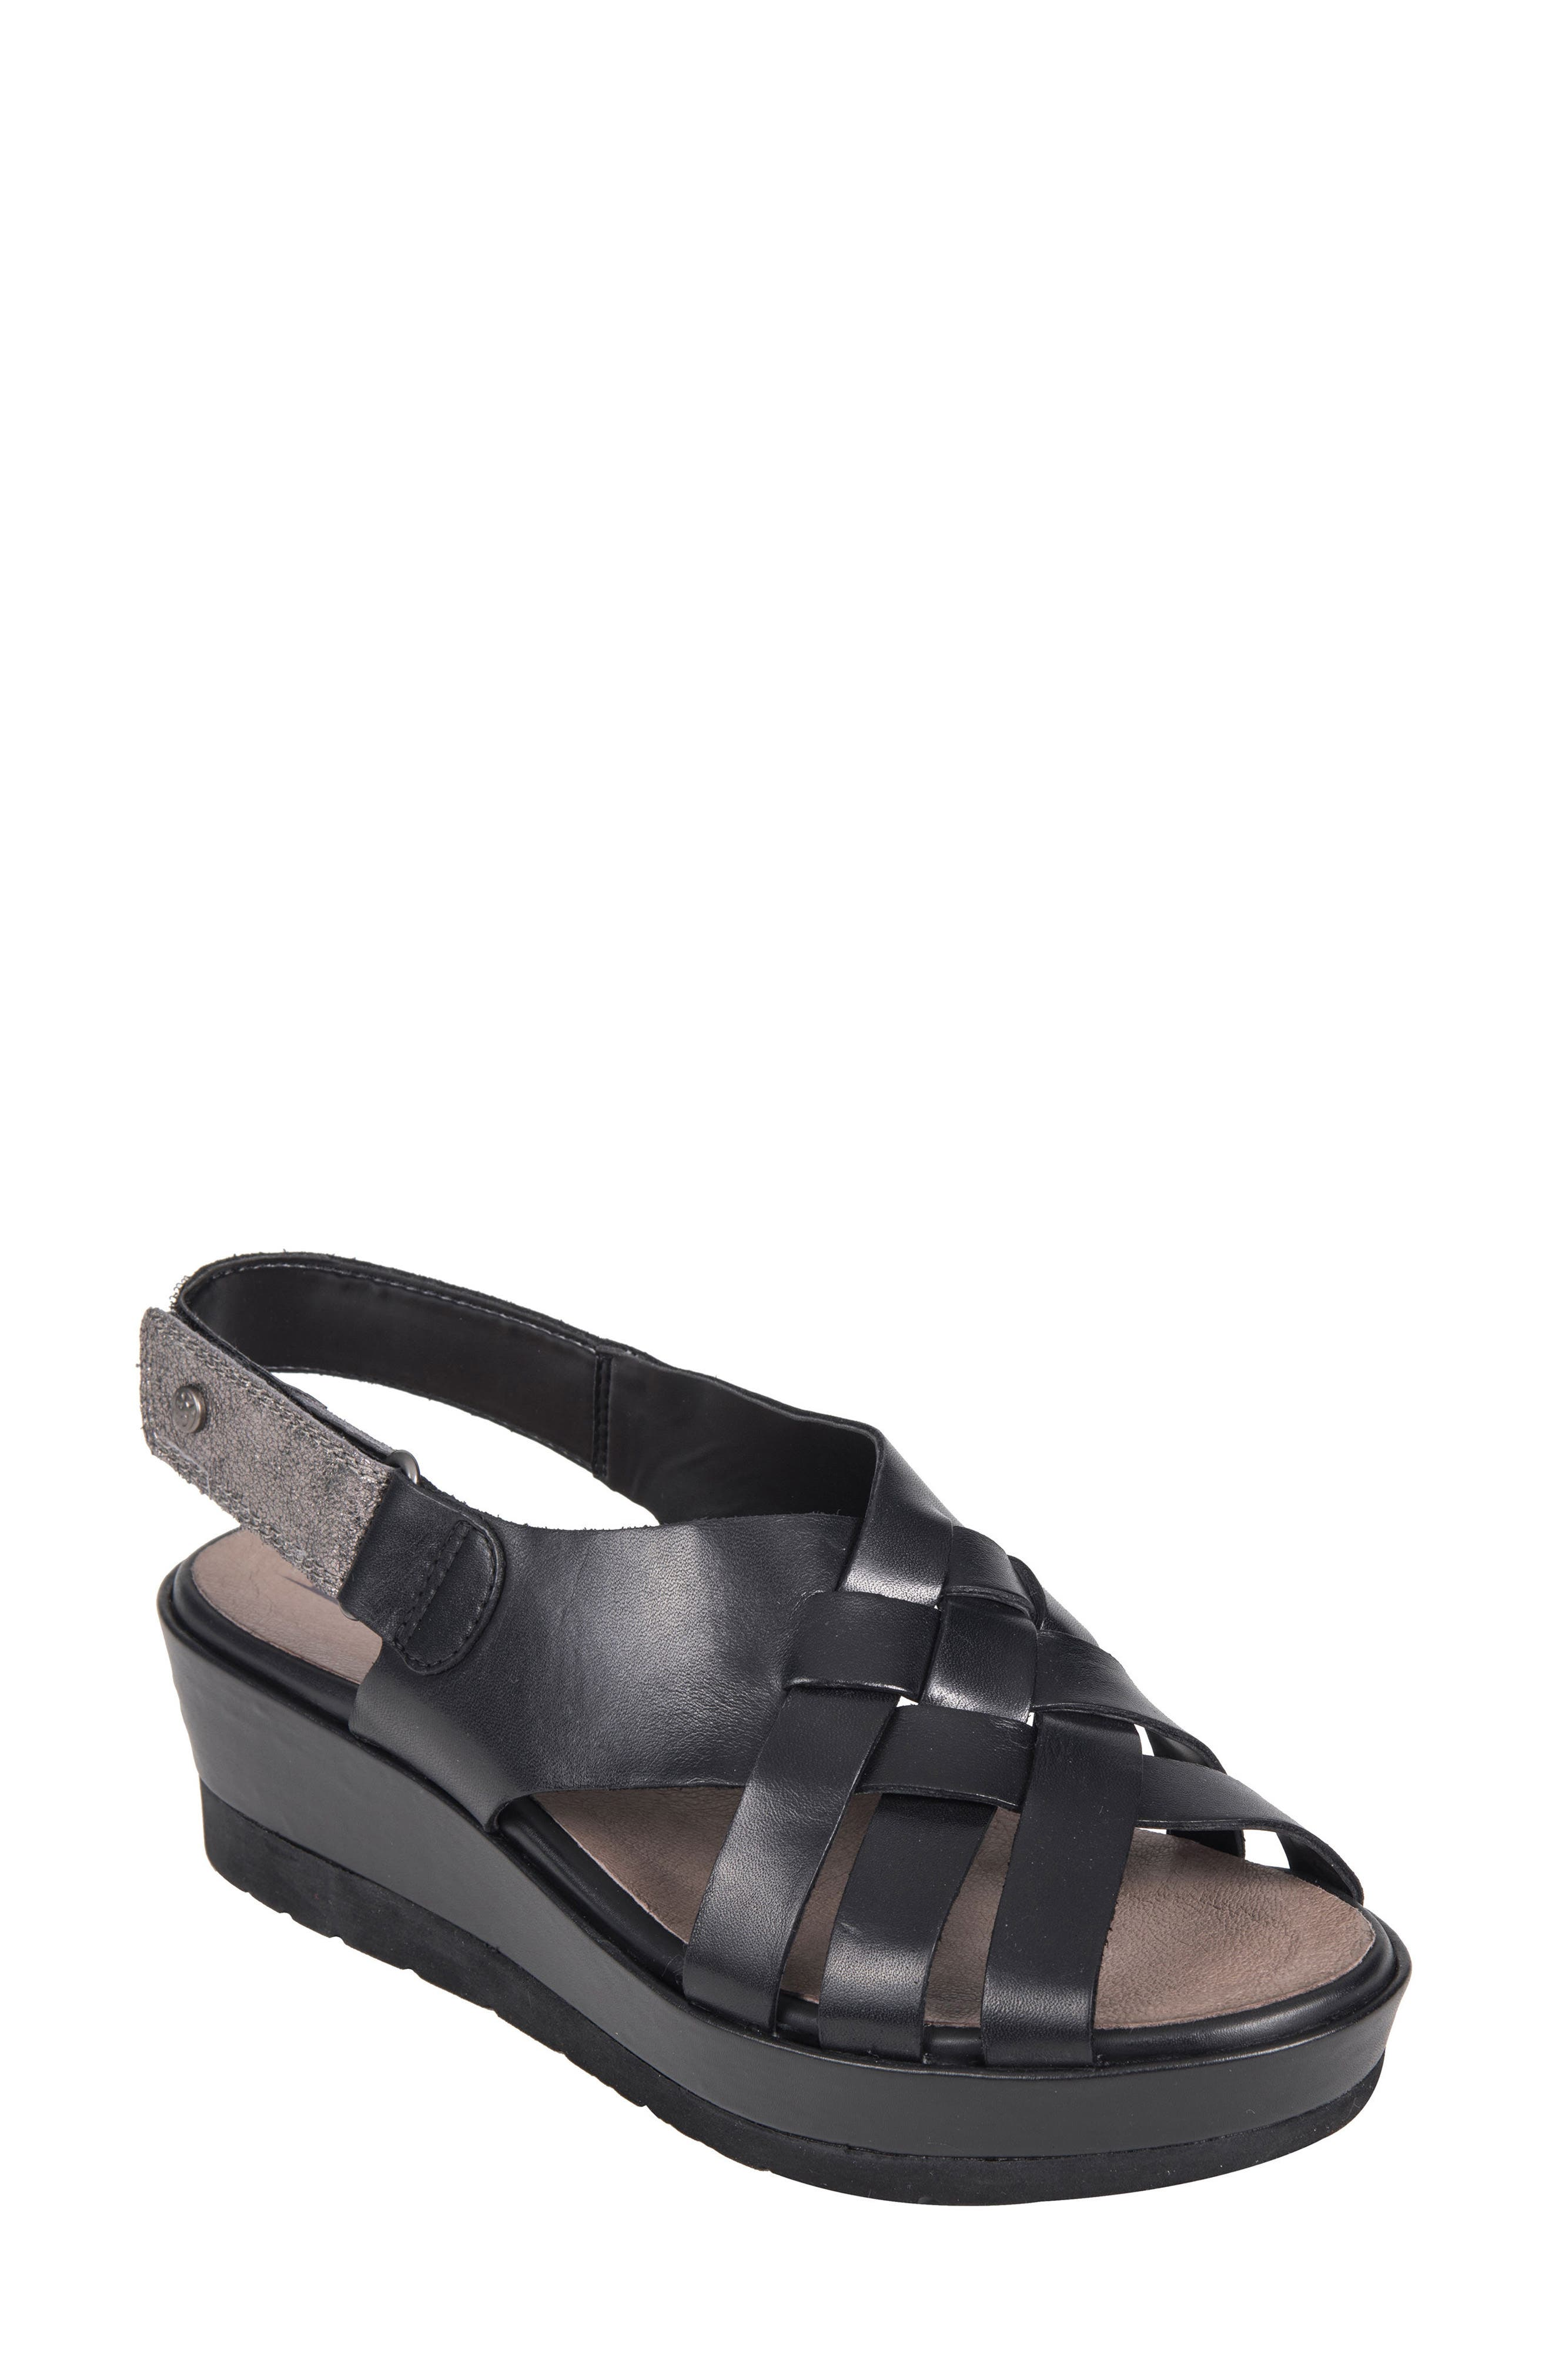 Sunflower Wedge Sandal,                         Main,                         color, BLACK LEATHER